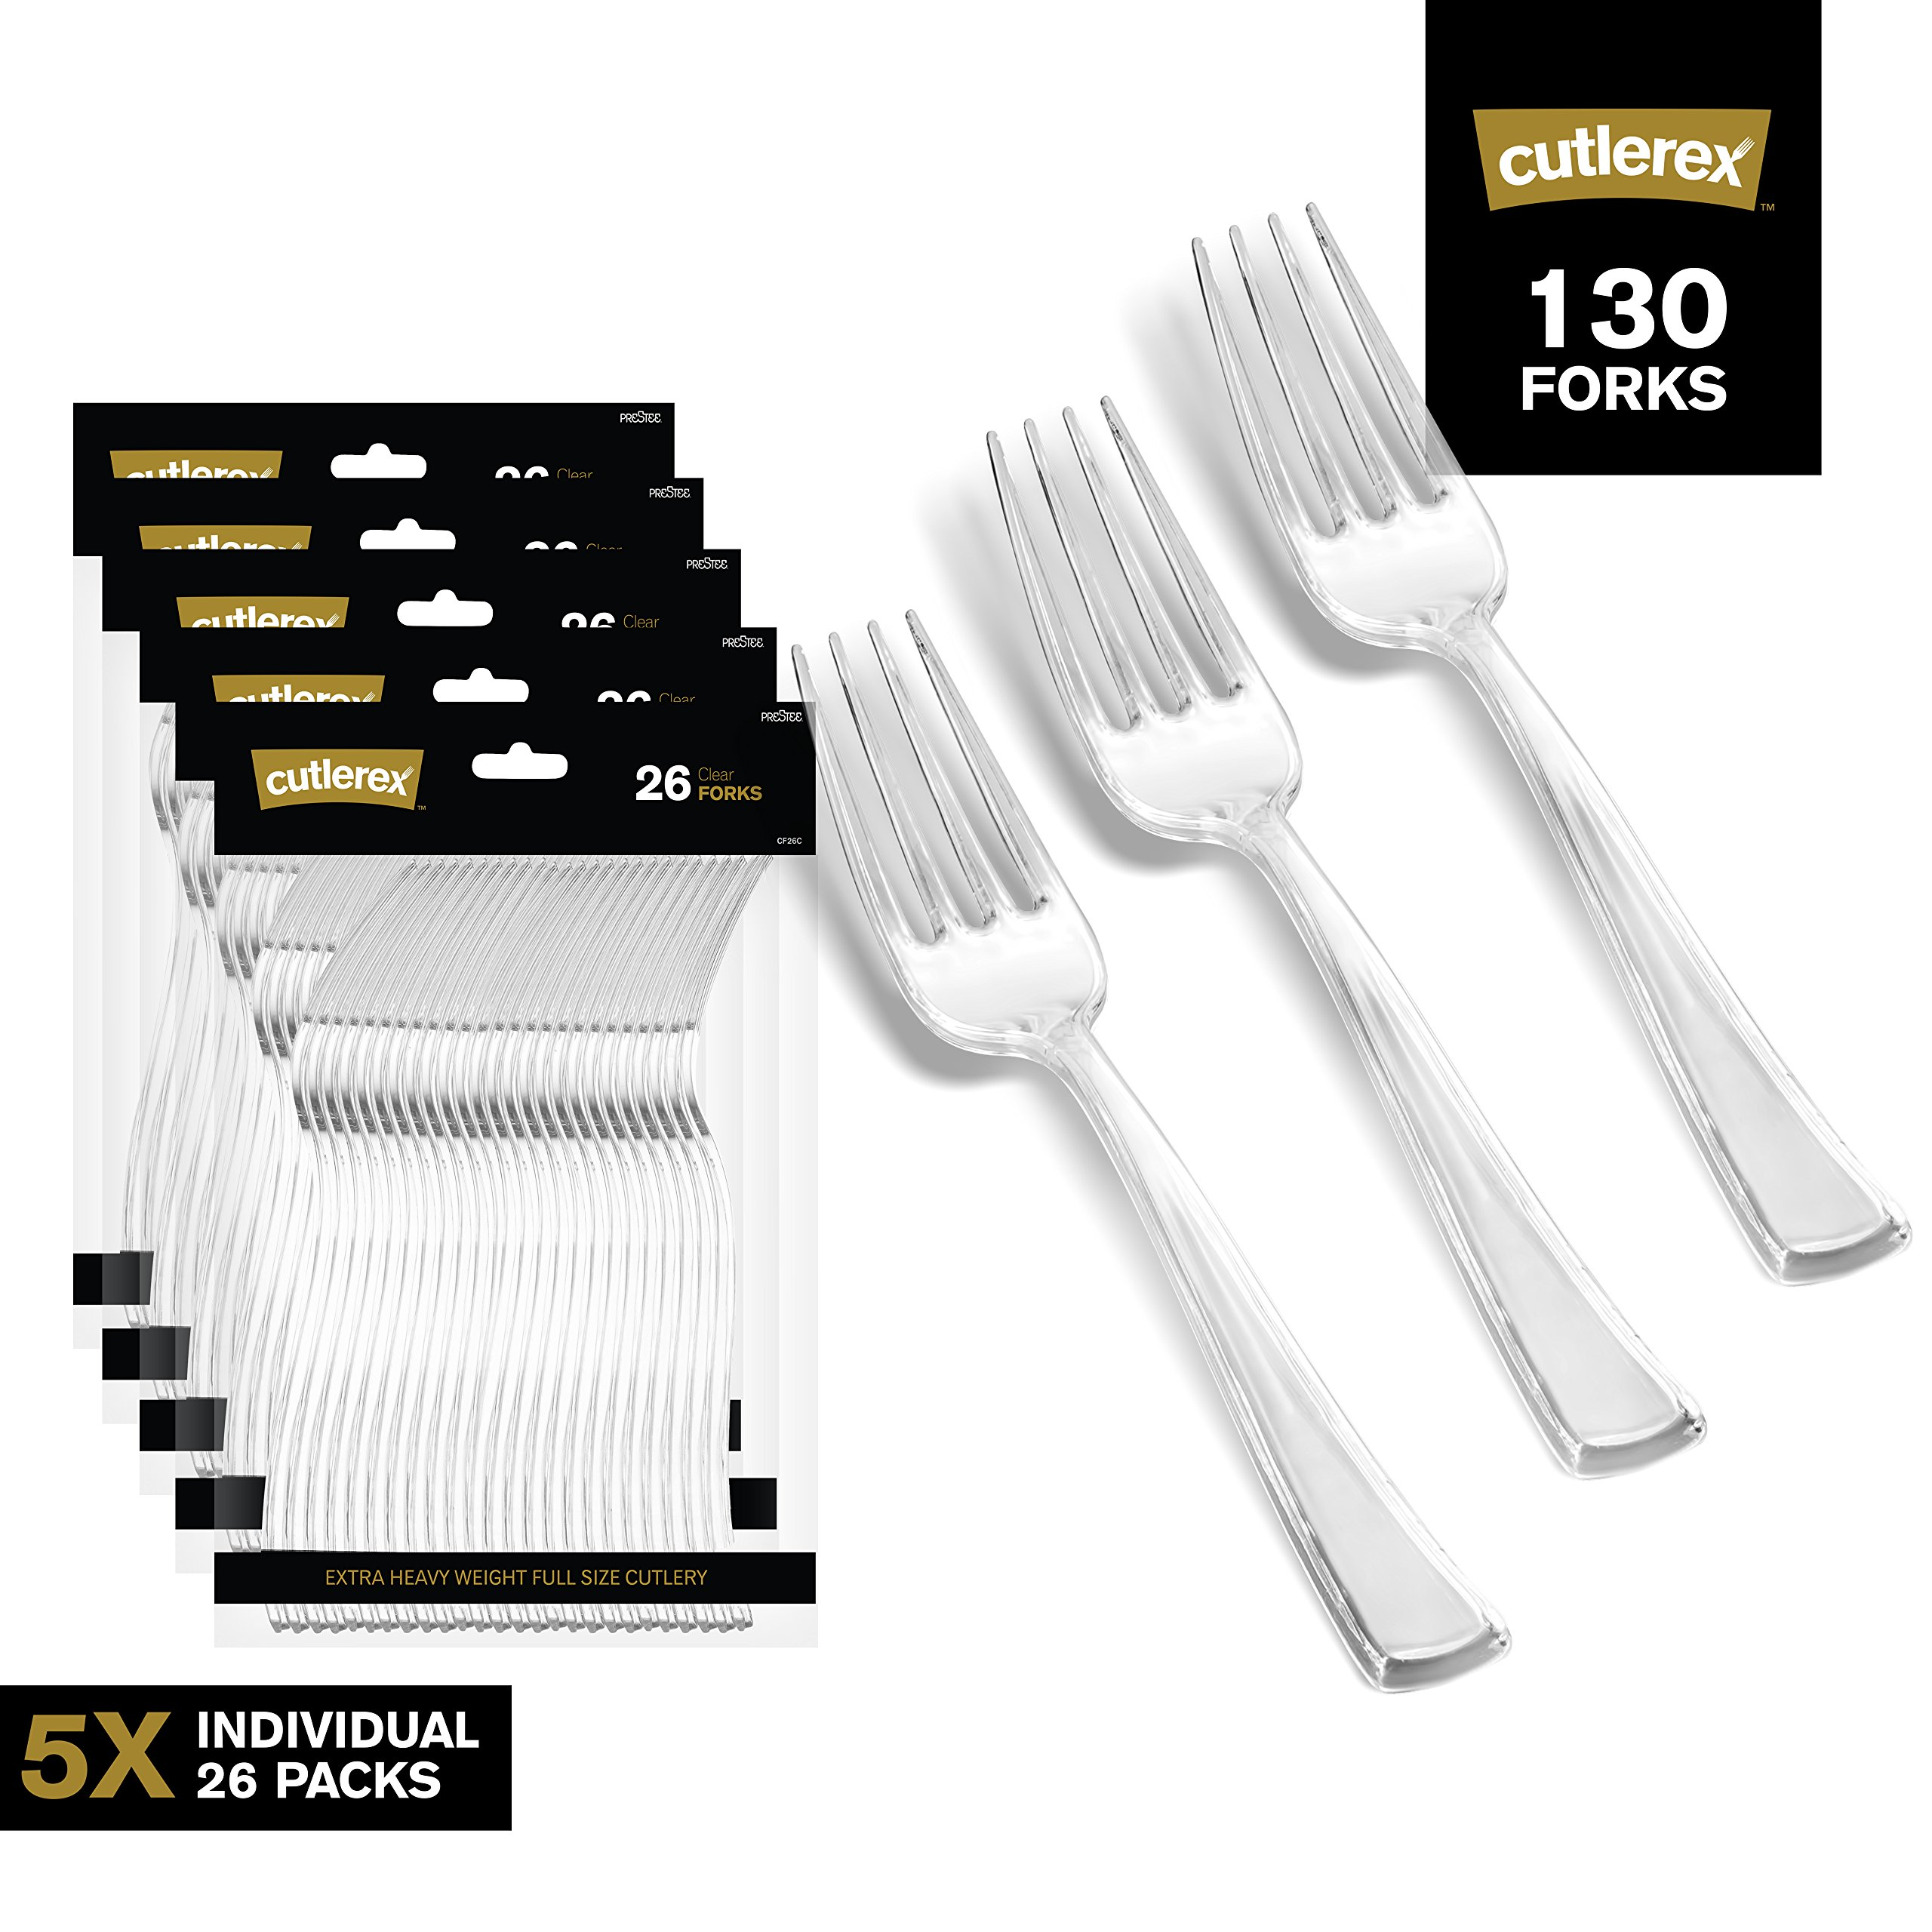 130 Clear Plastic Forks | Heavy Duty Plastic Silverware Forks | Fancy Plastic Cutlery | Elegant Disposable Forks Pack | Bulk Disposable Flatware | Plastic Utensils Set | Disposable Silverware Cutlery